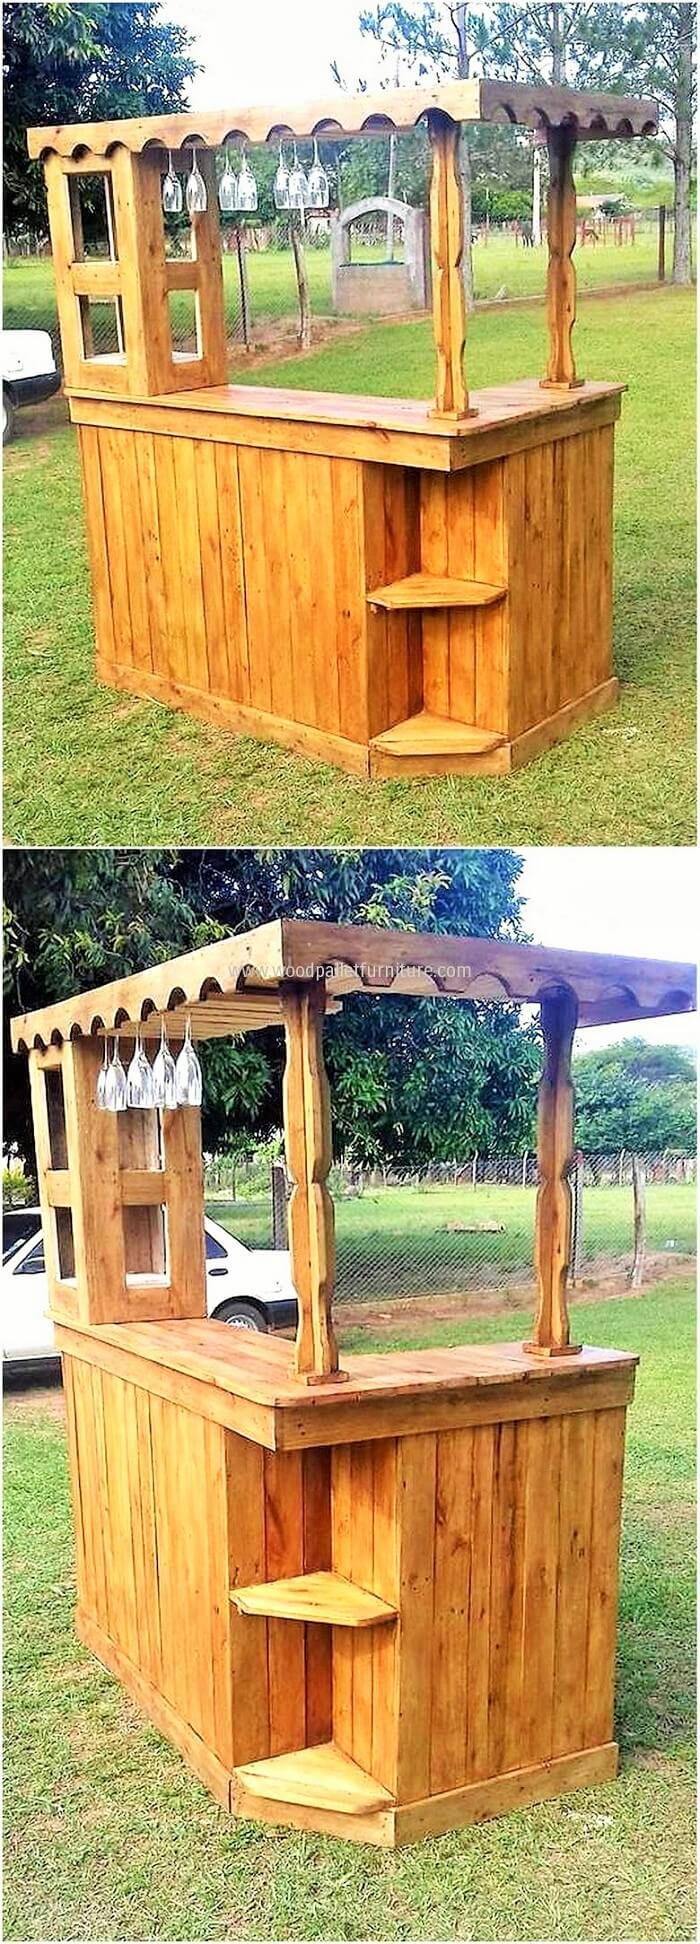 wood-pallet-bar-plan-Ideas